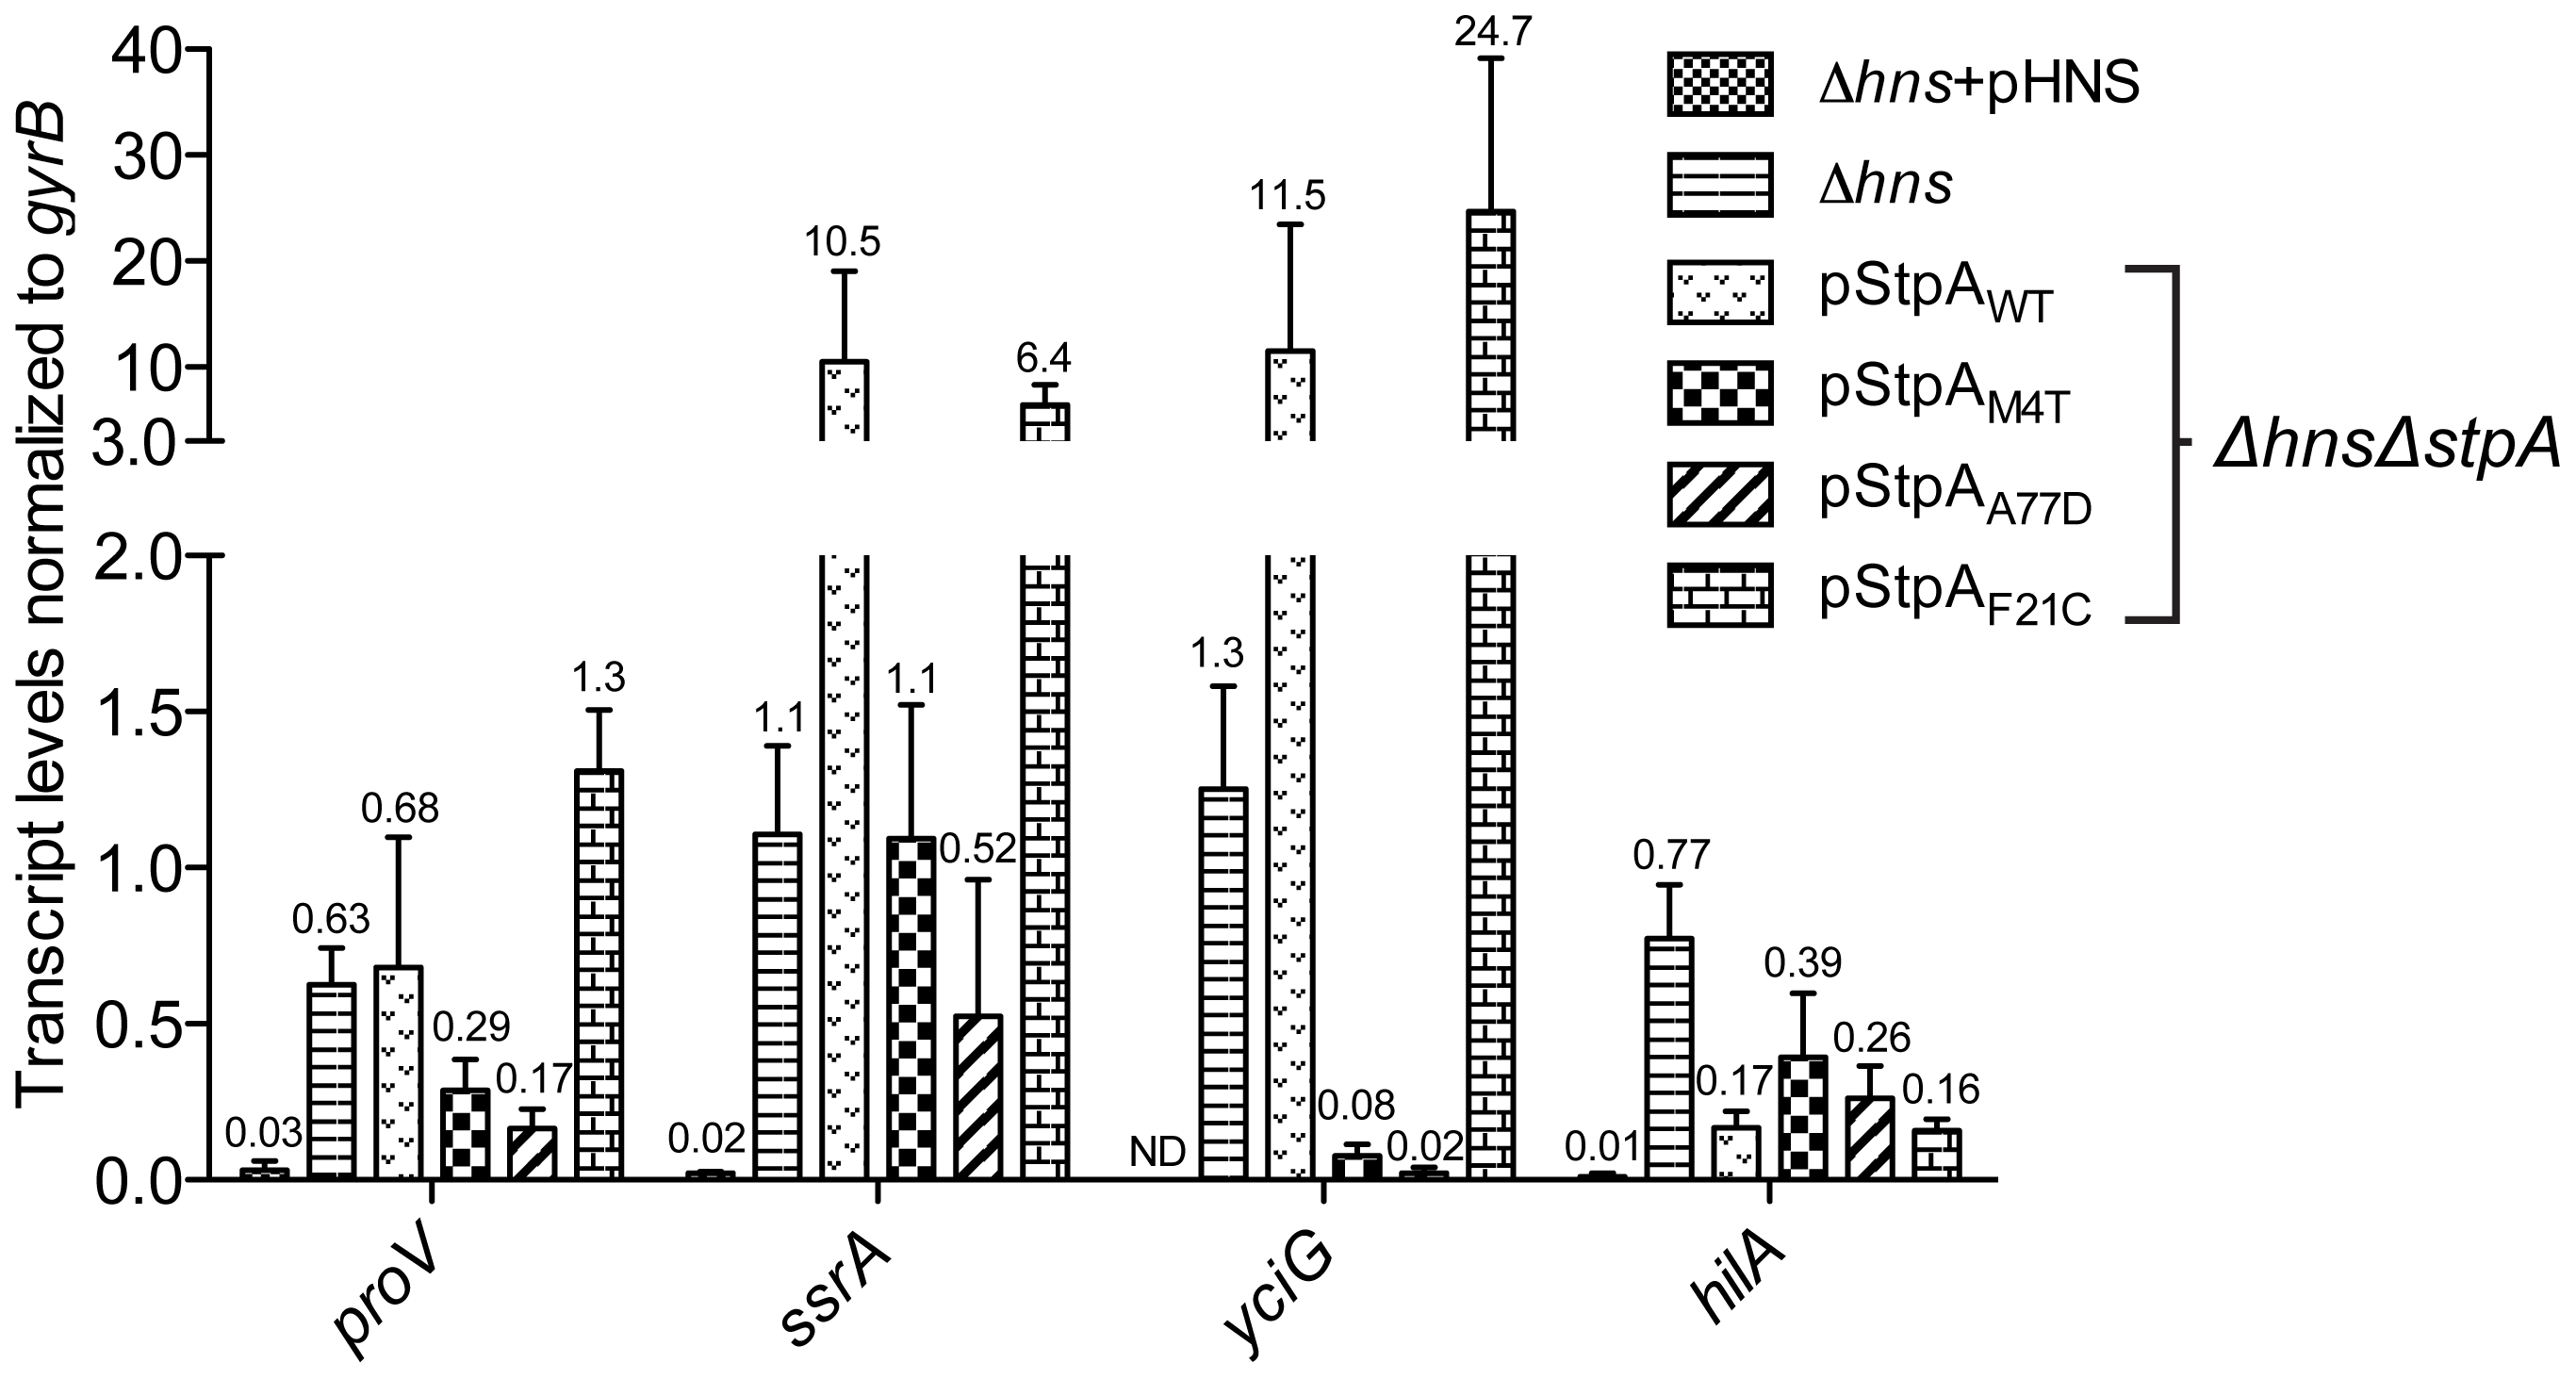 Point mutations A77D and M4T enhance StpA repression of select <i>hns</i> regulated loci.